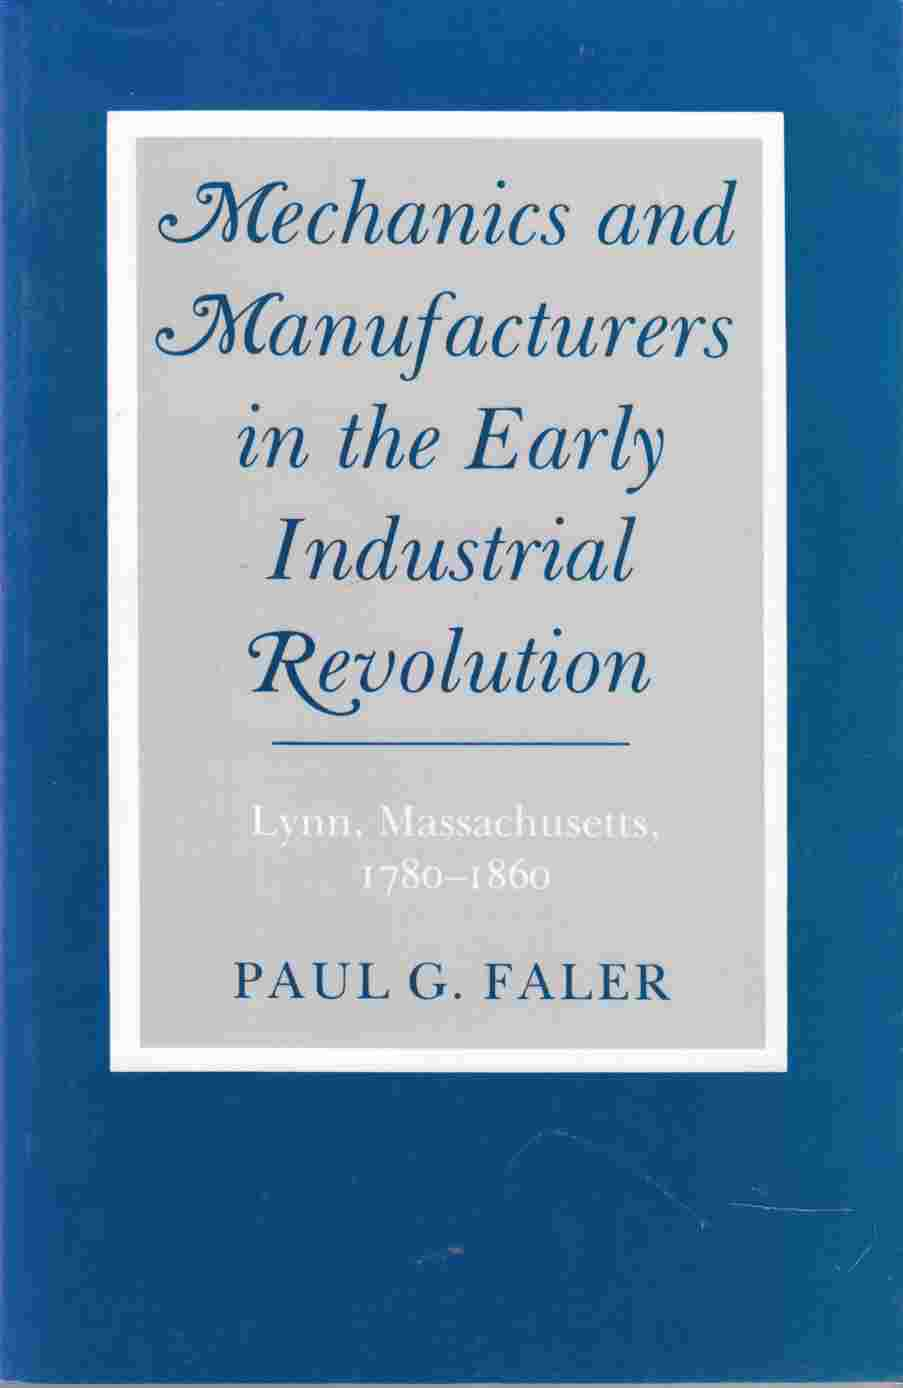 Image for Mechanics and Manufacturers in the Early Industrial Revolution Lynn, Massachusetts, 1780 - 1860